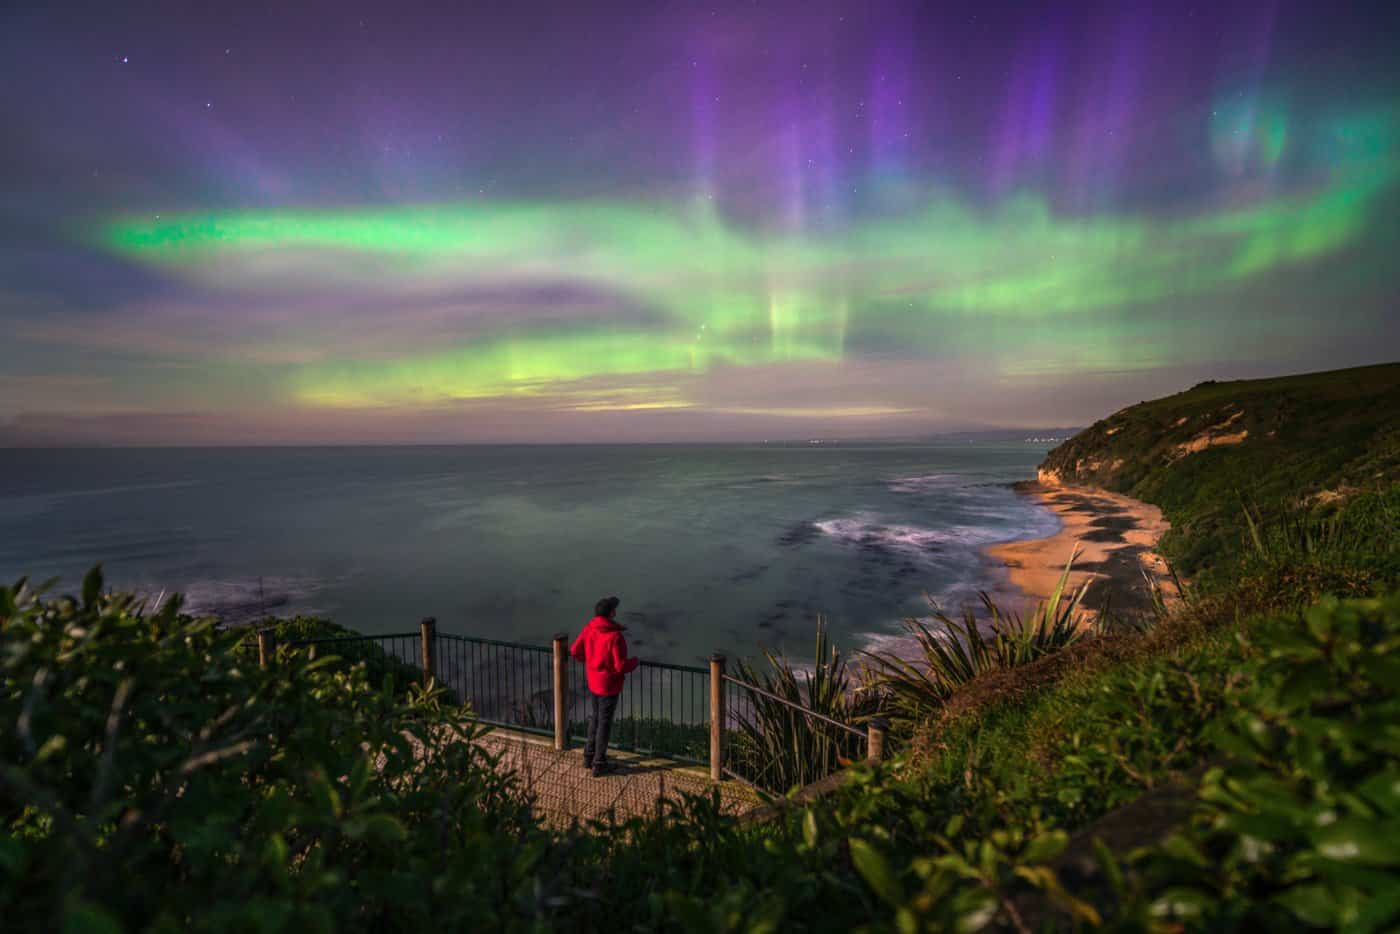 September is the best month to visit New Zealand to see the aurora australis (southern lights.)